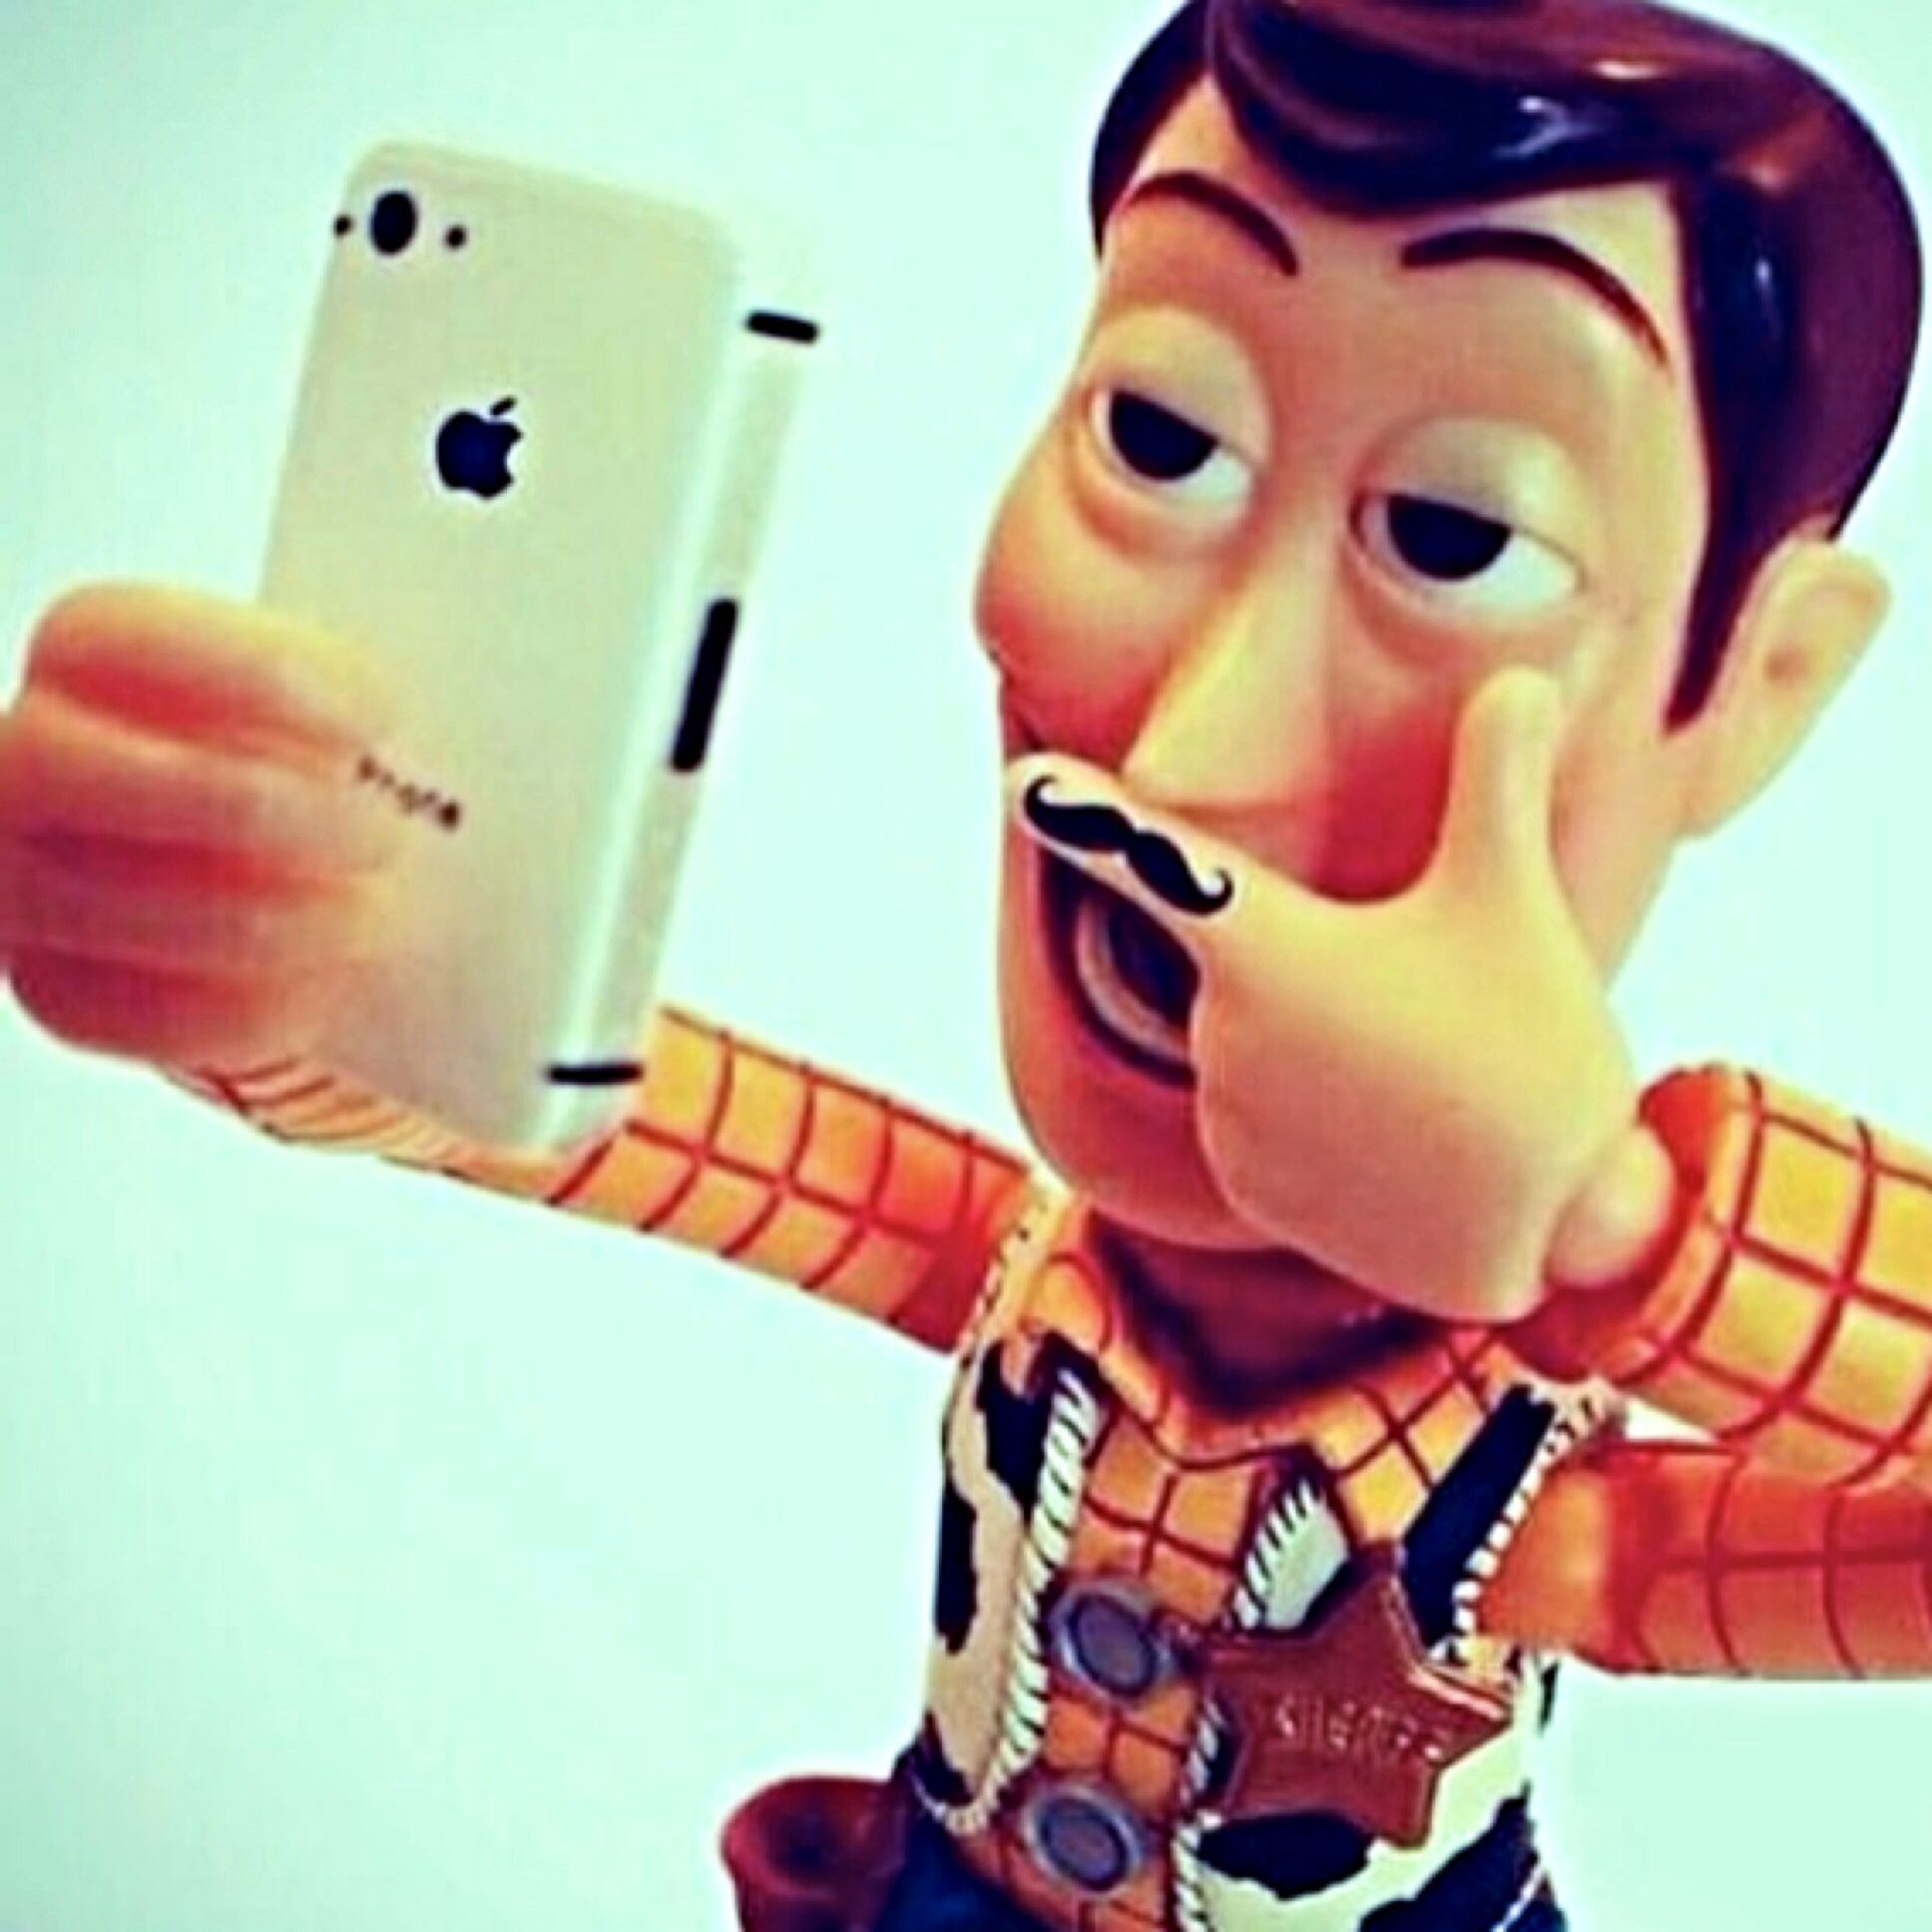 Apparently everyone takes a selfie. #Woody : )